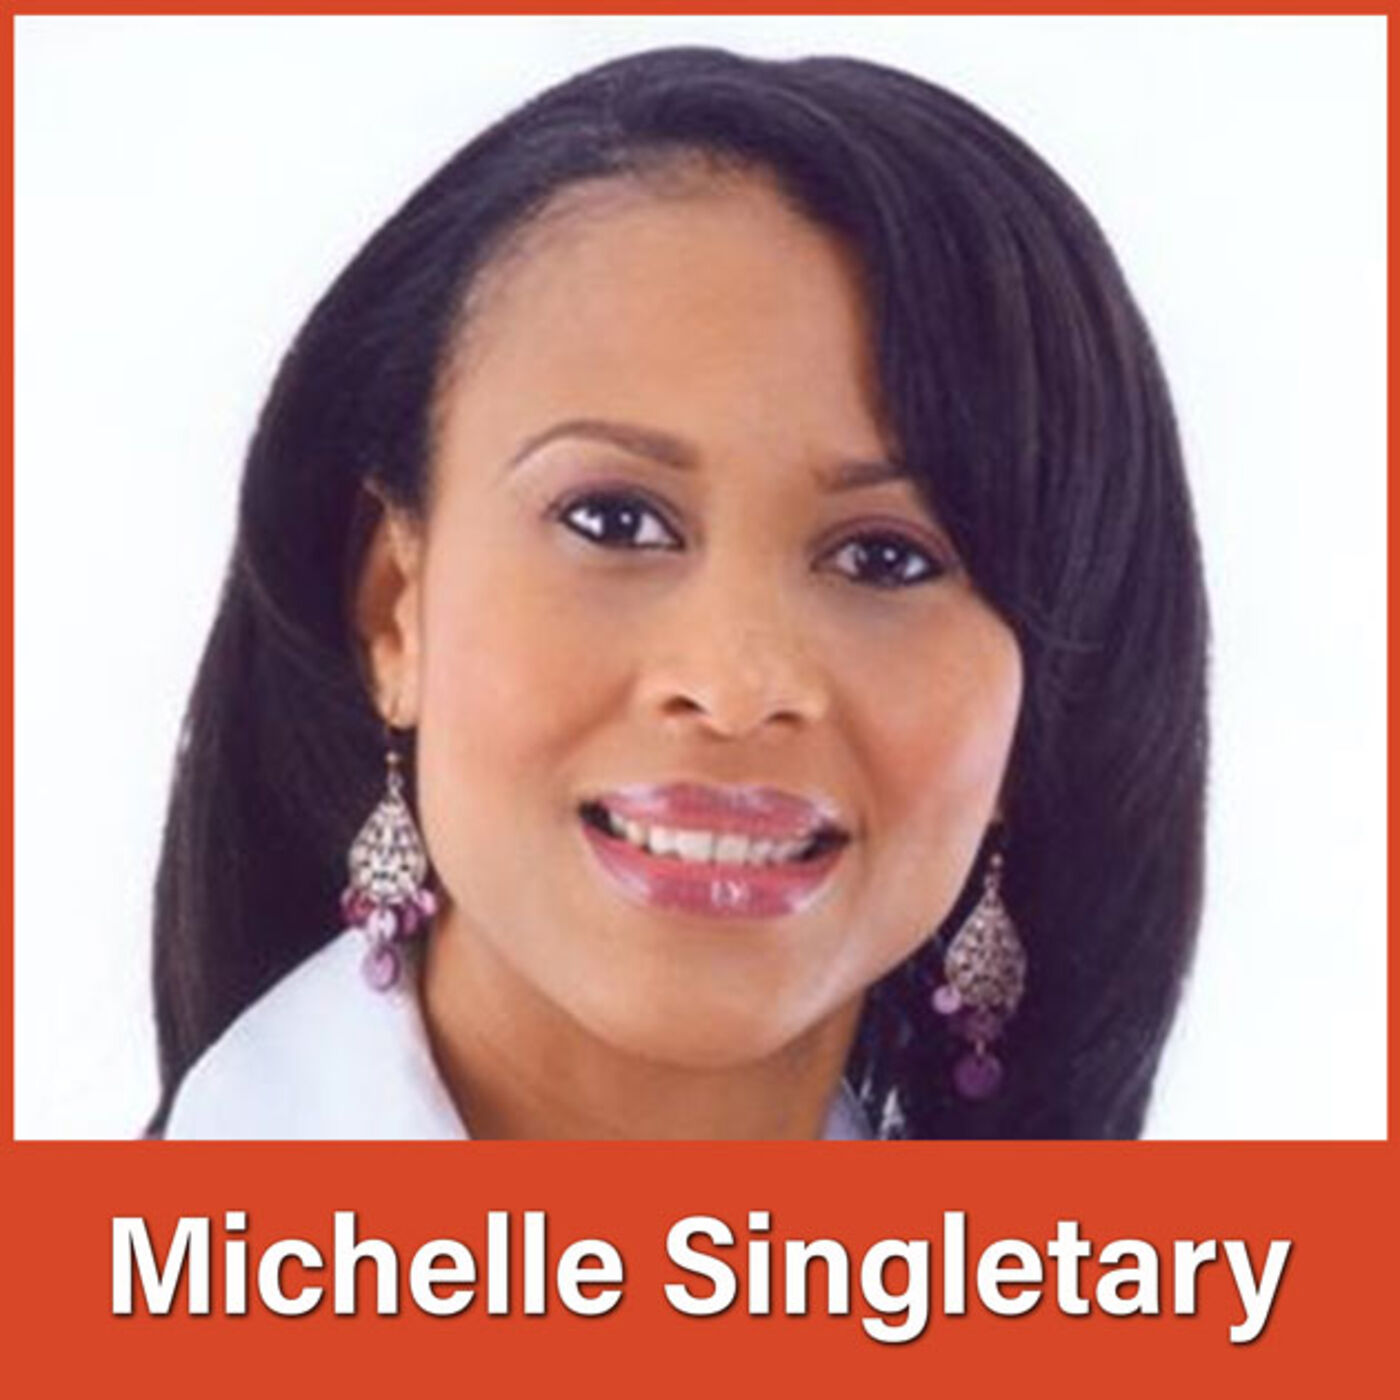 #31 Michelle Singletary: A Rising Tide Lifts All Boats